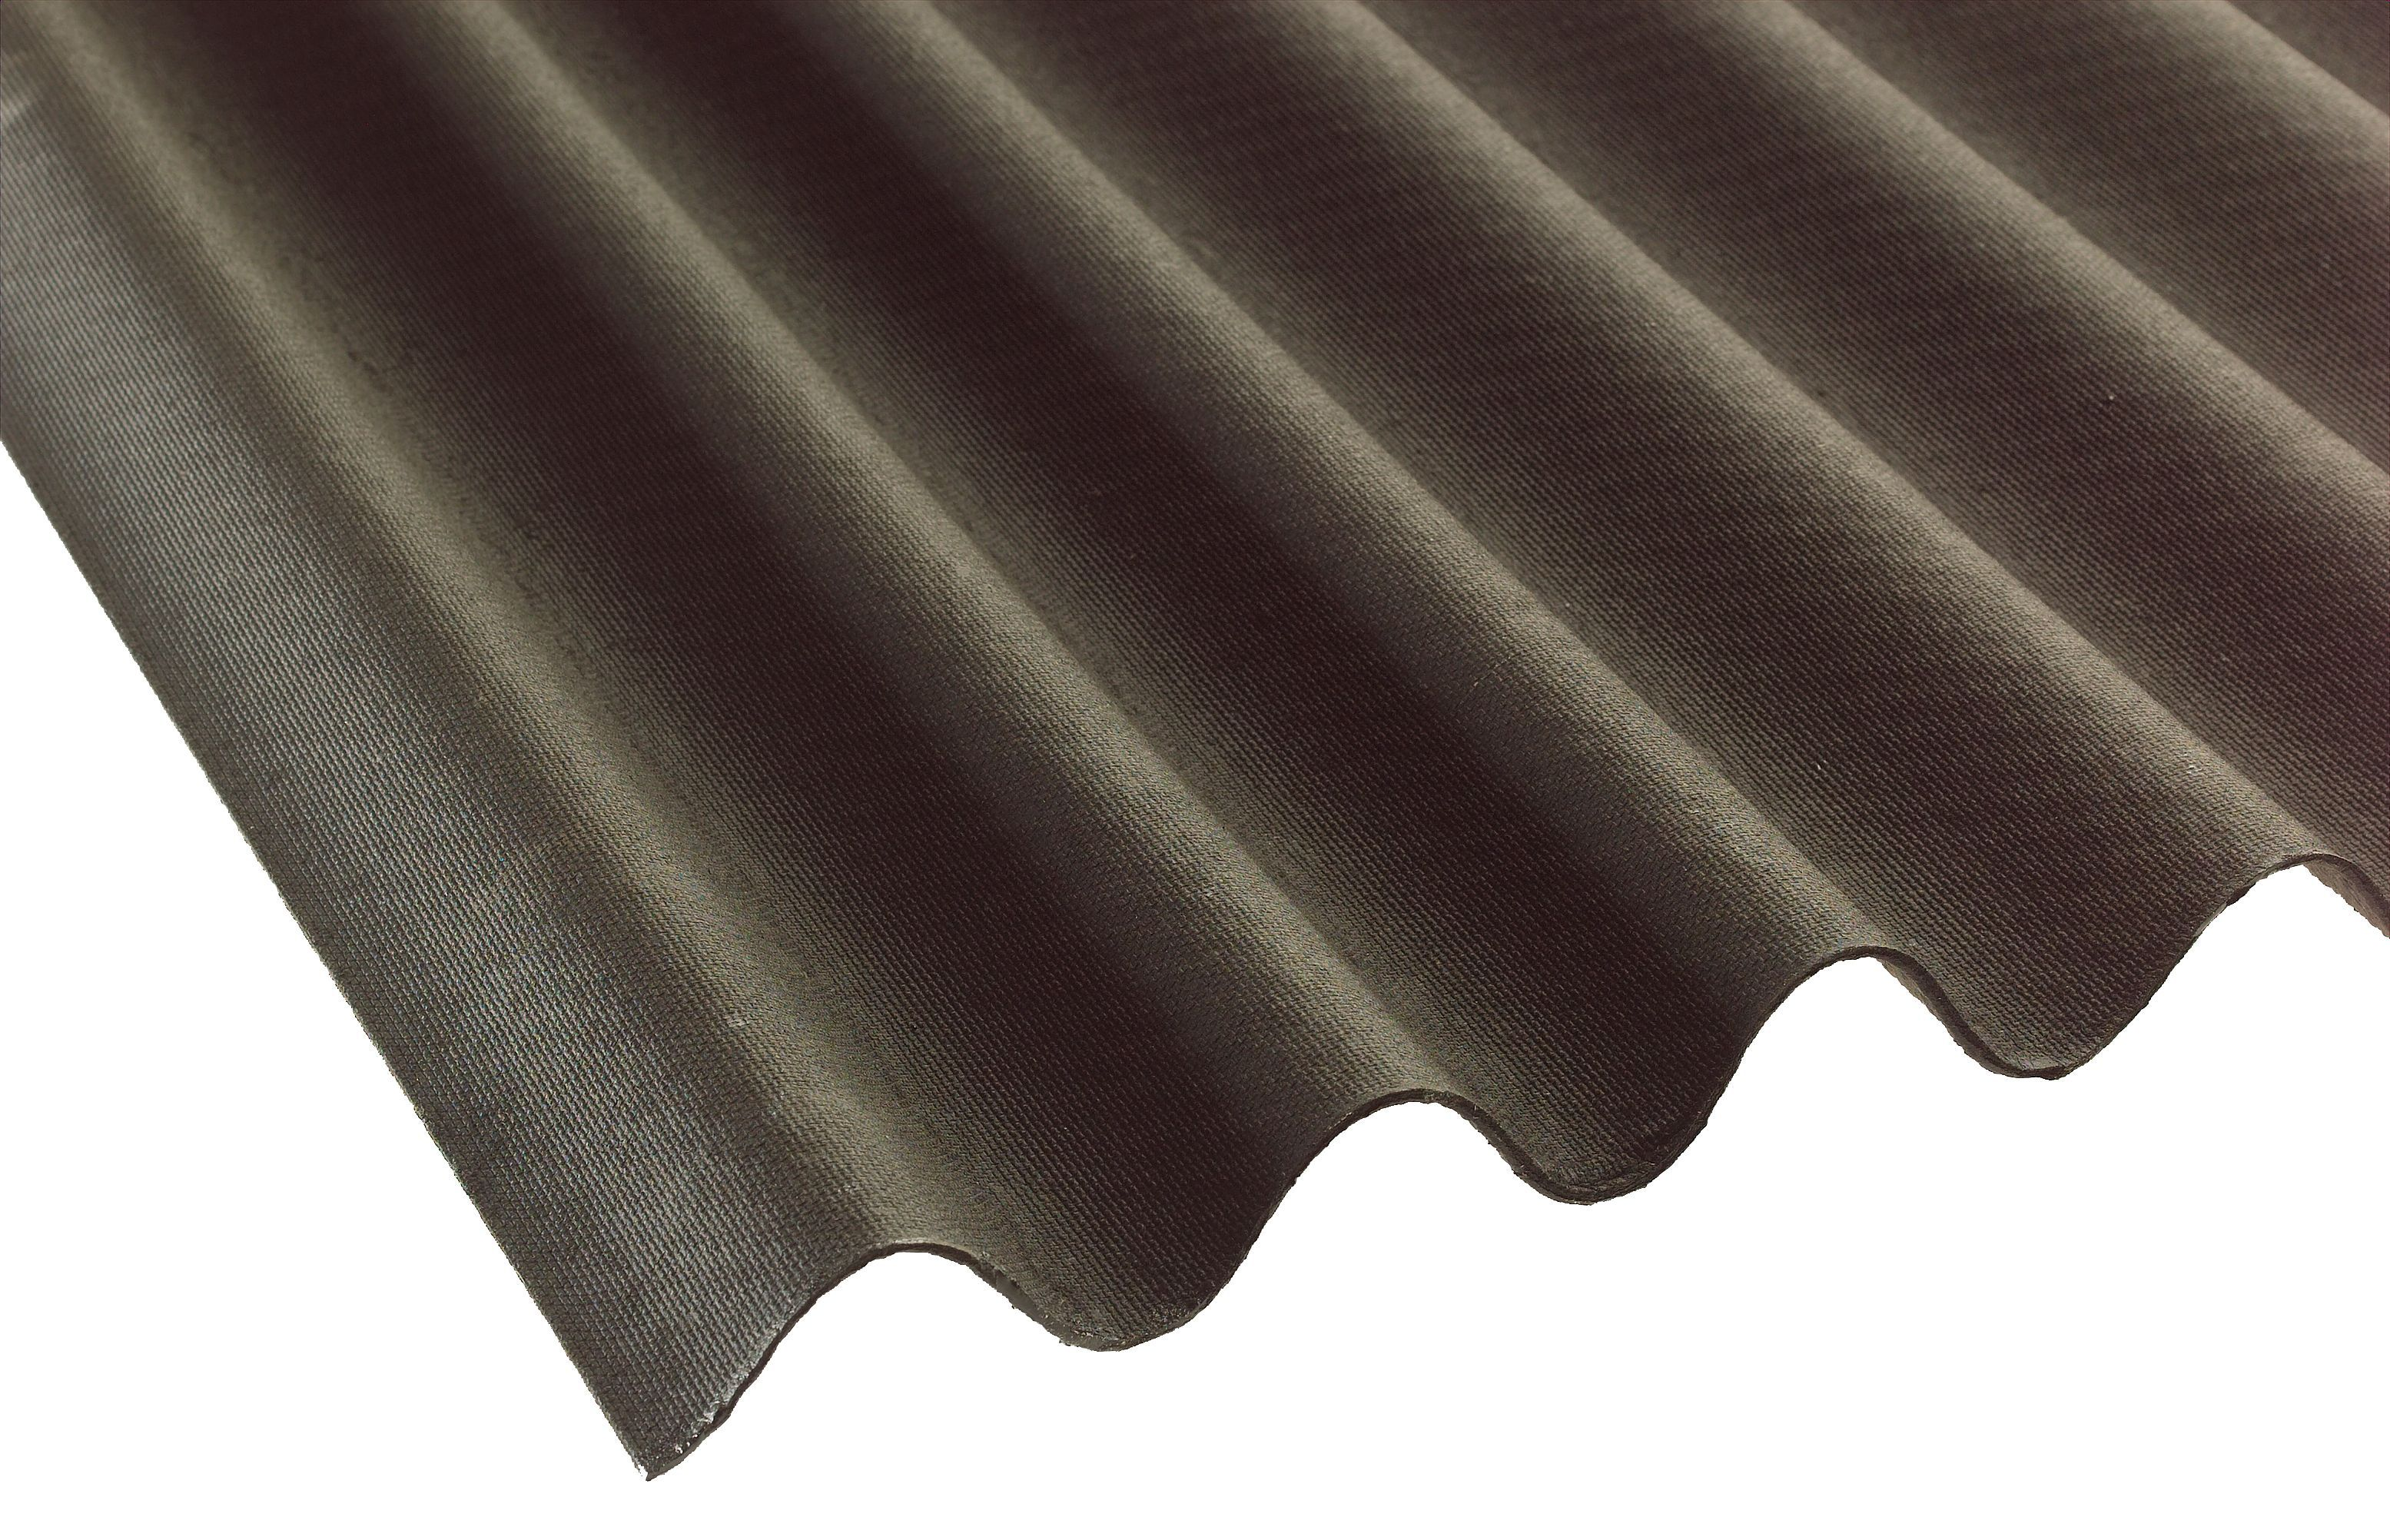 Bathroom wall panels b q - Black Bitumen Roofing Sheet 2m X 900mm Departments Diy